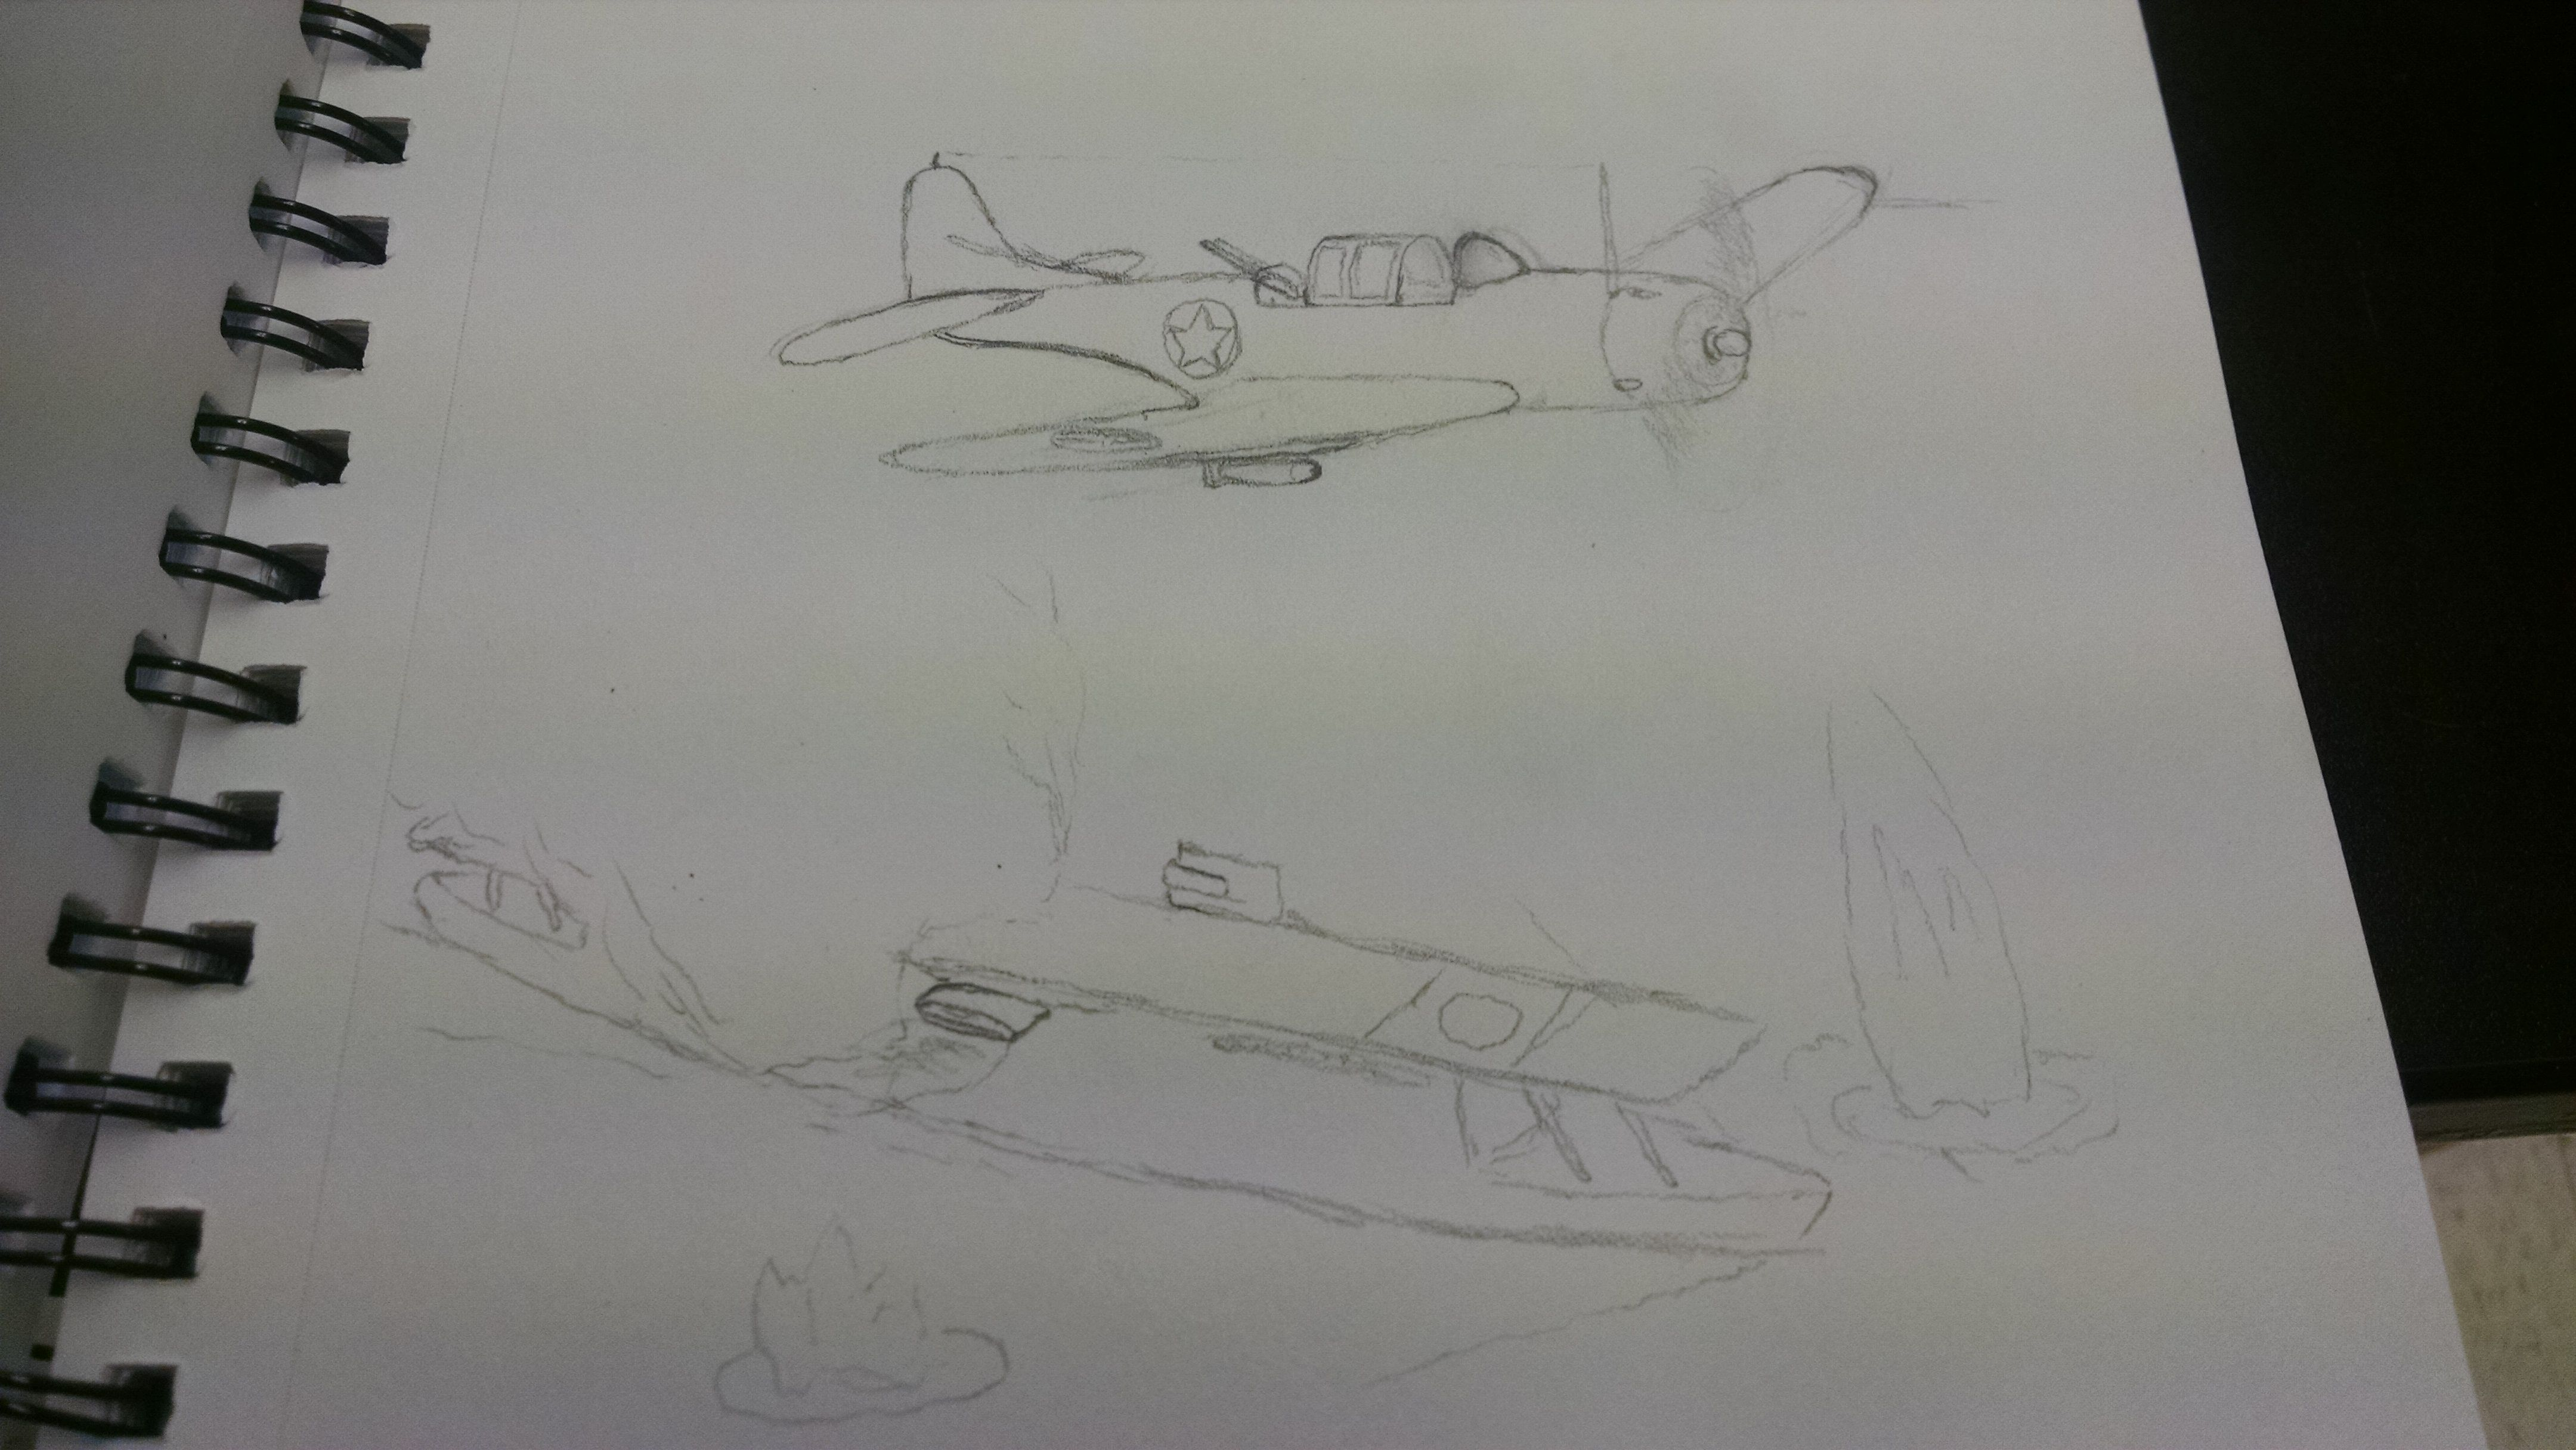 Battle Of Midway Wip Sketches Drawings Humanoid Sketch